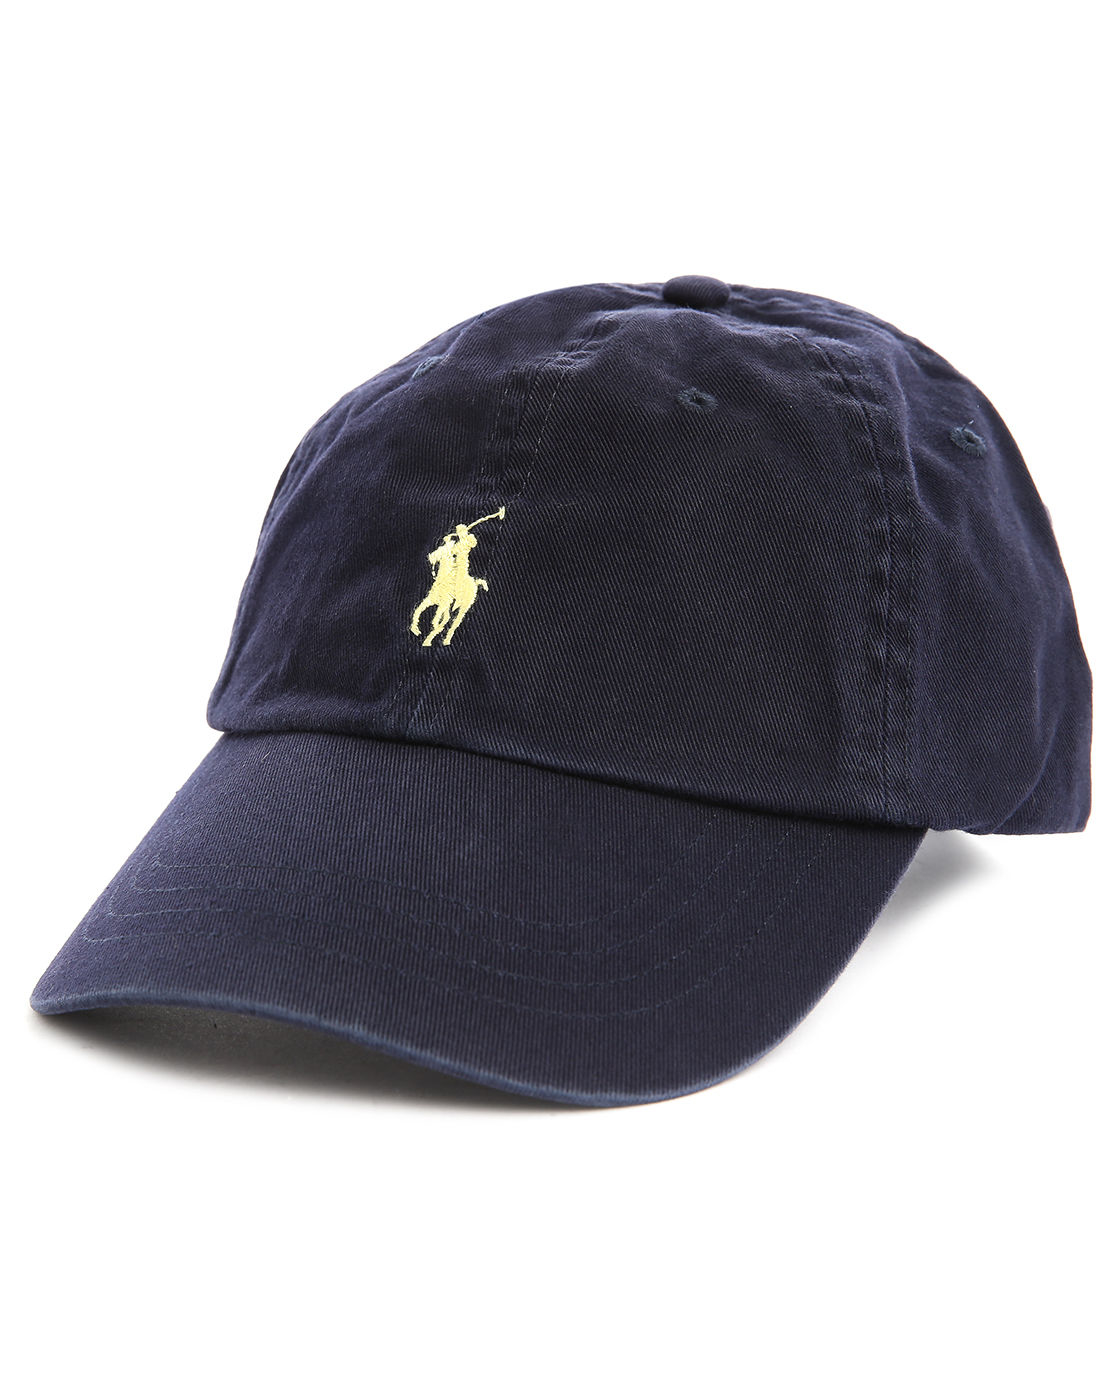 polo ralph lauren navy blue classic sport cap in blue for. Black Bedroom Furniture Sets. Home Design Ideas